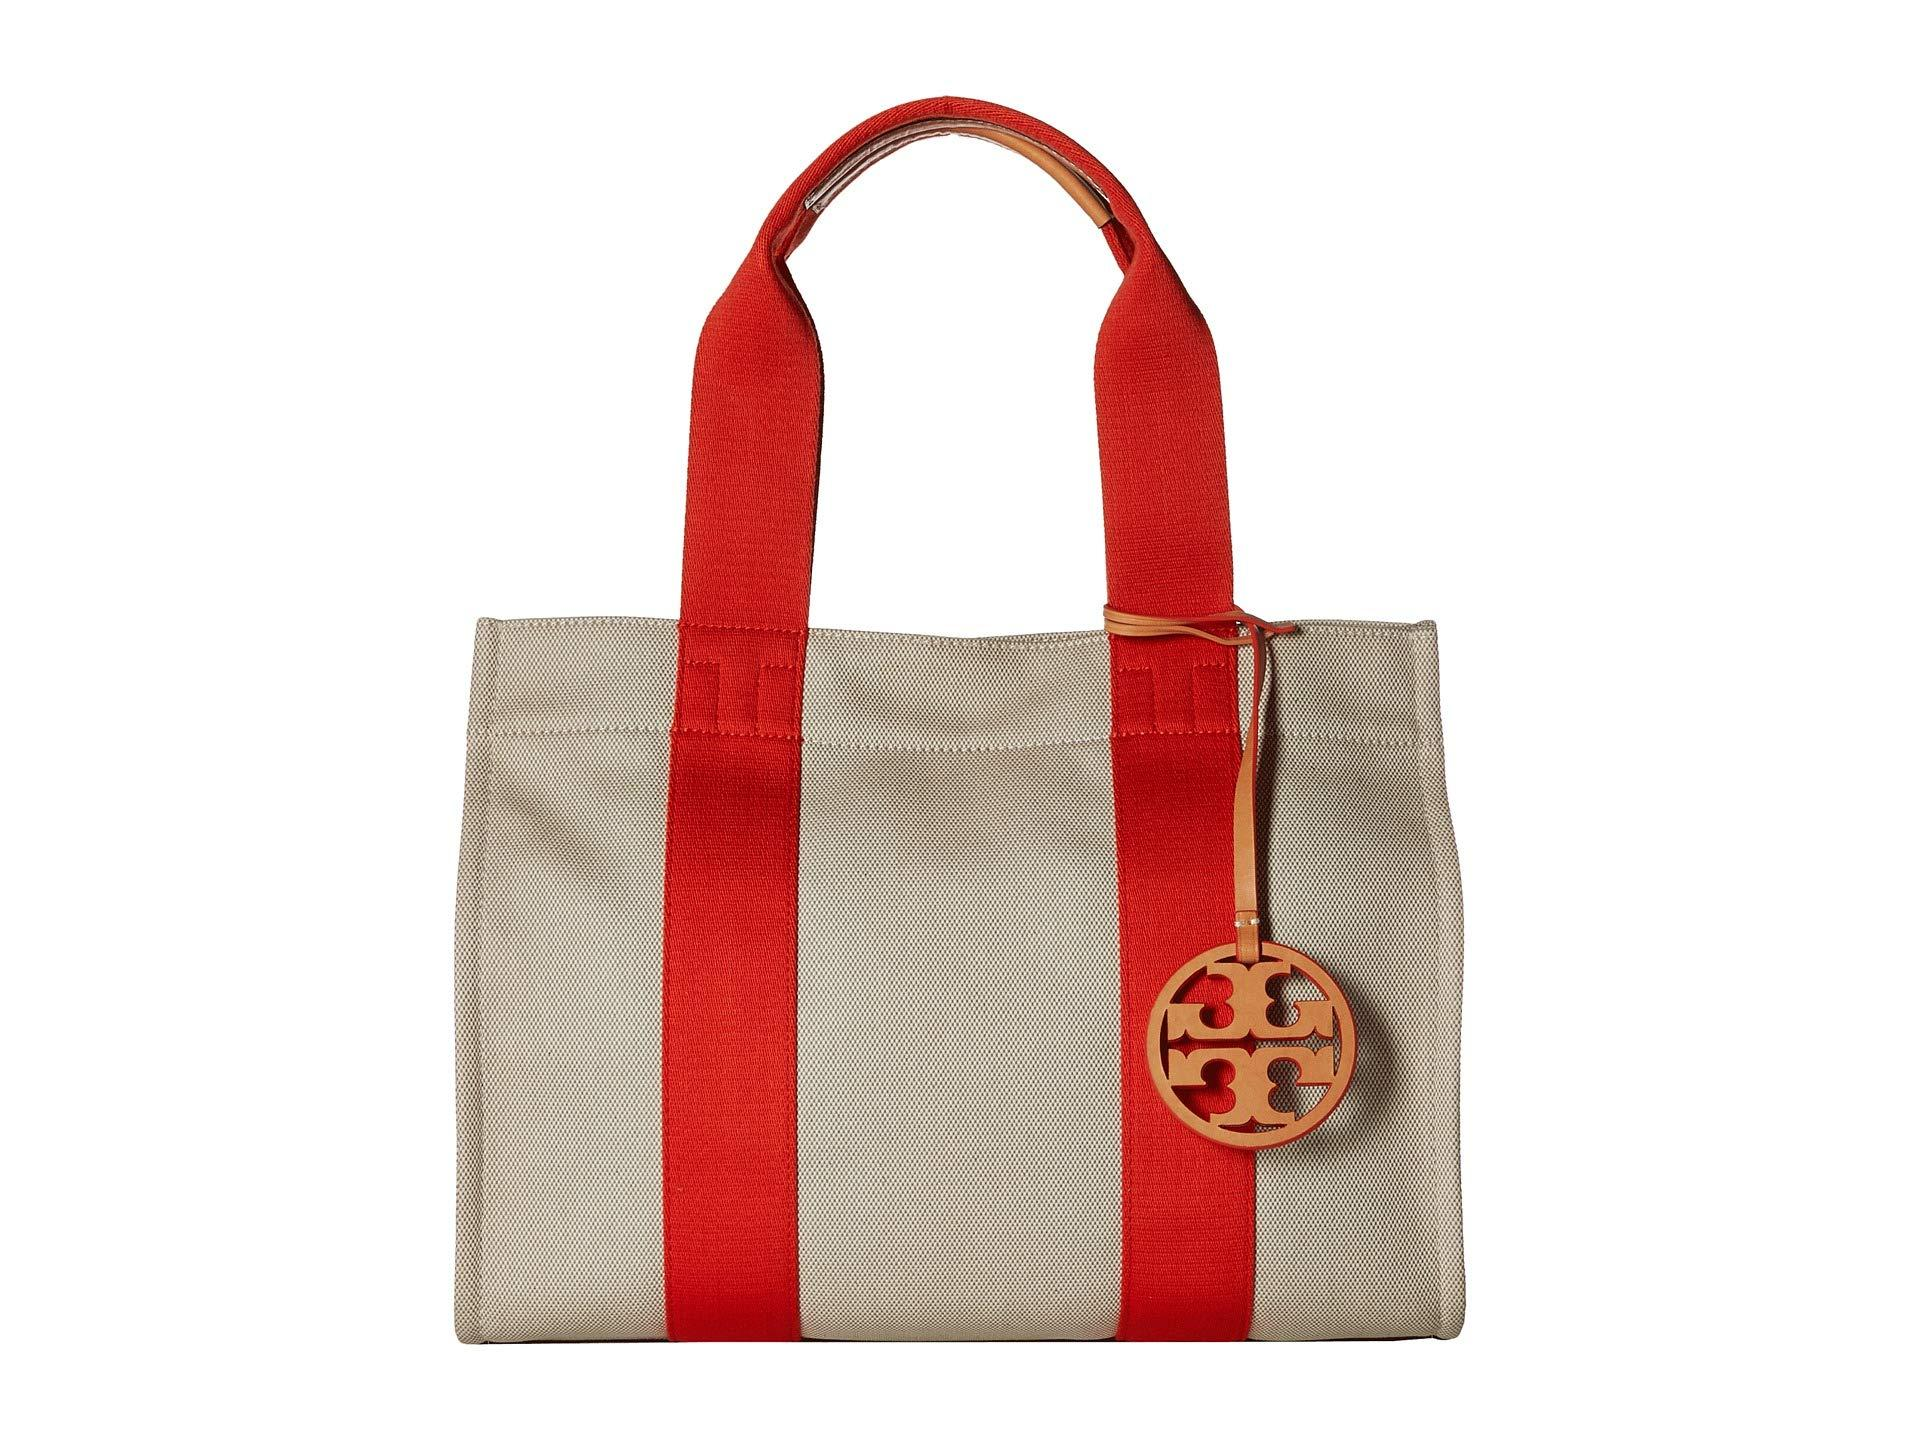 037d6de845f612 Lyst - Tory Burch Miller Canvas Tote in Red - Save 53%